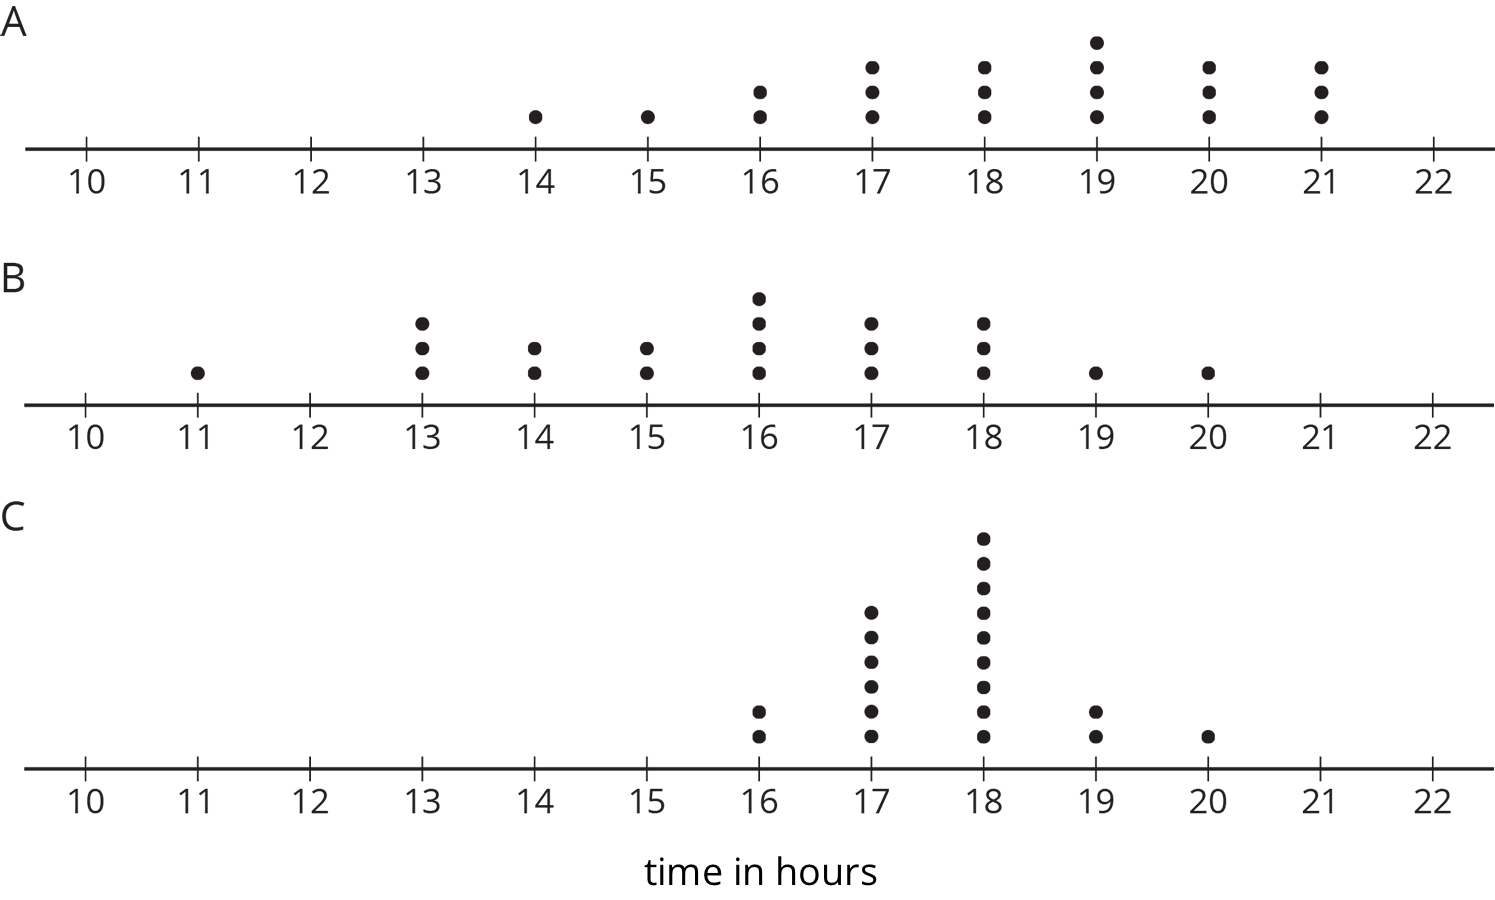 Three dot plots are labeled A, B, and C. Each dot plot has the numbers 10 through 22 indicated.  Dot plot A has the following data:  10 through 13 hours, 0 dots; 14 hours, 1 dot; 15 hours, 1 dot; 16 hours, 2 dots; 17 hours, 3 dots; 18 hours, 3 dots; 19 hours, 4 dots; 20 hours, 3 dots; 21 hours, 3 dots; 22 hours, 0 dots.  Dot plot B has the following data:  10 hours, 0 dots; 11 hours, 1 dot; 12 hours, 0 dots; 13 hours, 3 dots; 14 hours, 2 dots; 15 hours, 2 dots; 16 hours, 4 dots; 17 hours, 3 dots; 18 hours, 3 dots; 19 hours, 1 dot; 20 hours, 1 dot; 21 hours, 0 dots; 22 hours, 0 dots.  Dot plot C has the following data:  10 through 15 hours, 0 dots; 16 hours, 2 dots; 17 hours, 6 dots; 18 hours, 9 dots; 19 hours, 2 dot; 20 hours, 1 dot; 21 hours, 0 dots; 22 hours, 0 dots.